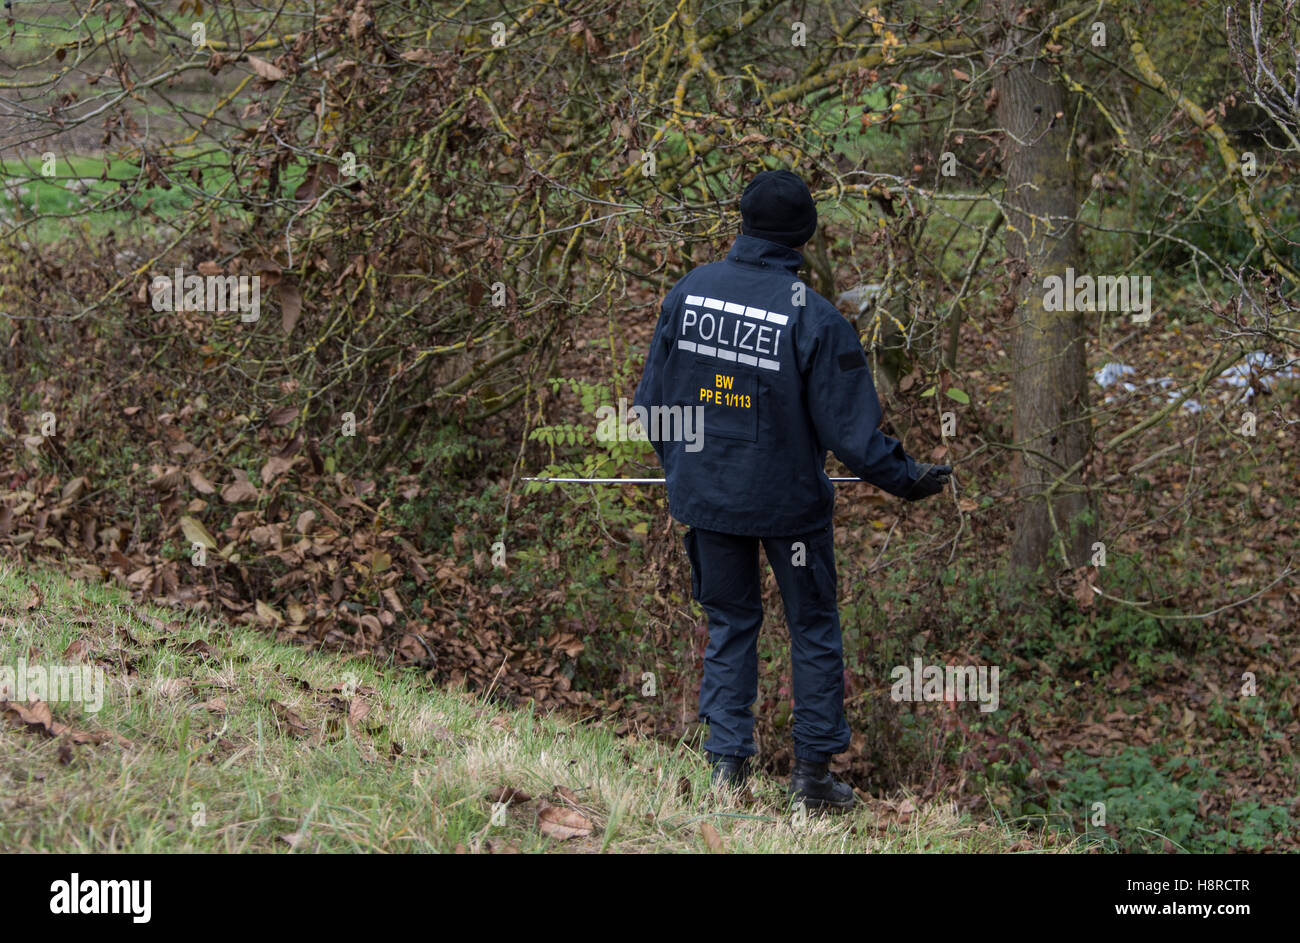 A police man is looking for a missing 27-year-old female jogger among grape vines in Endingen, Germany, 08 November - Stock Image